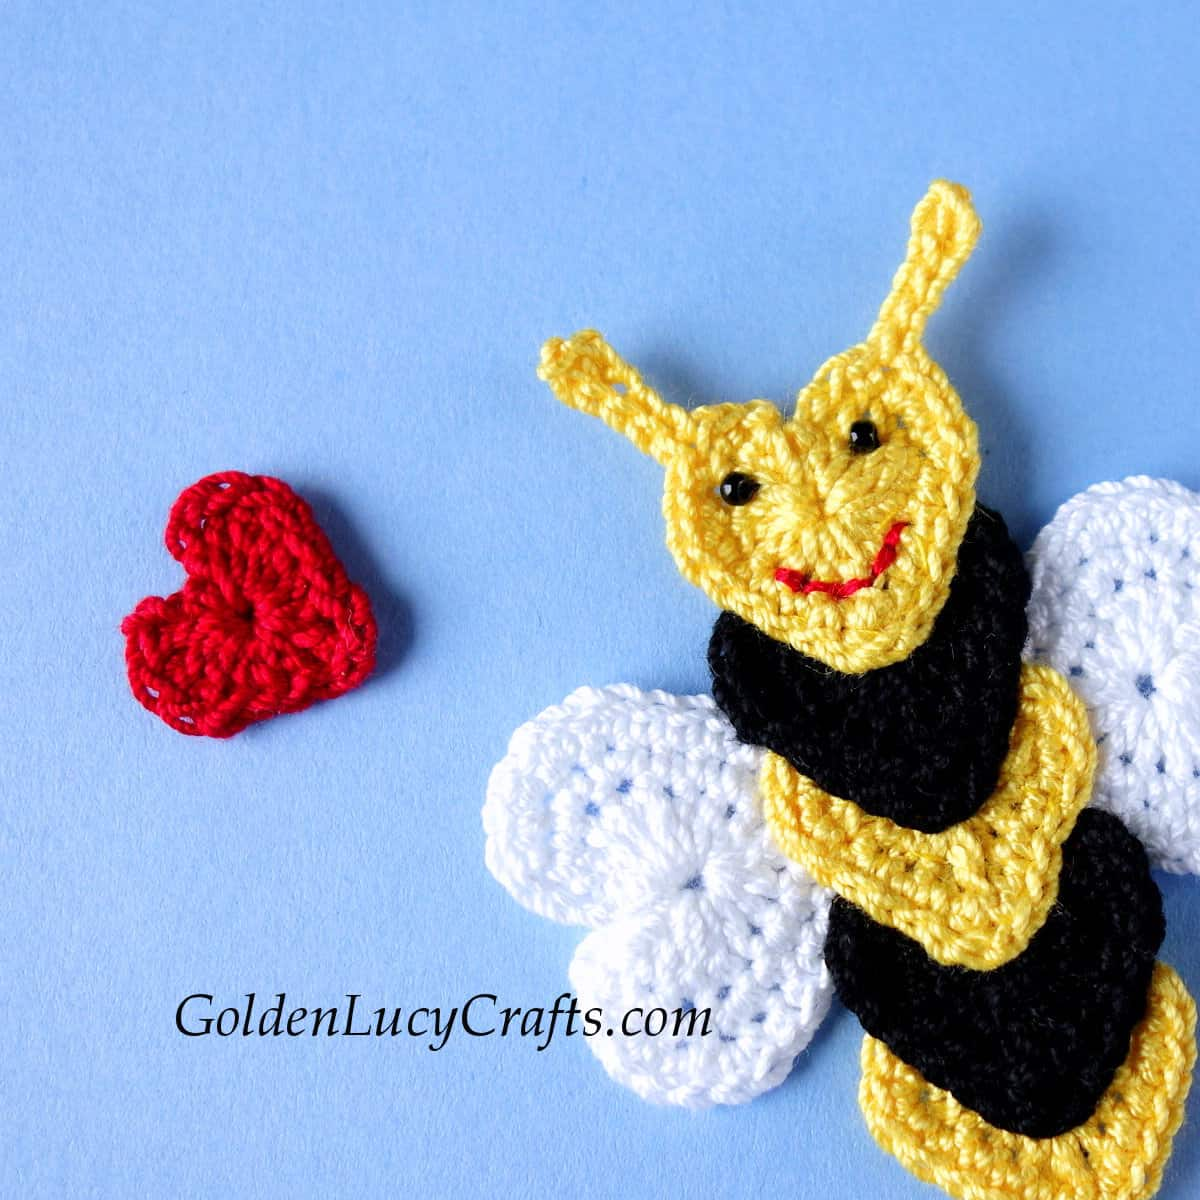 Crochet bee and small red heart, close up image.